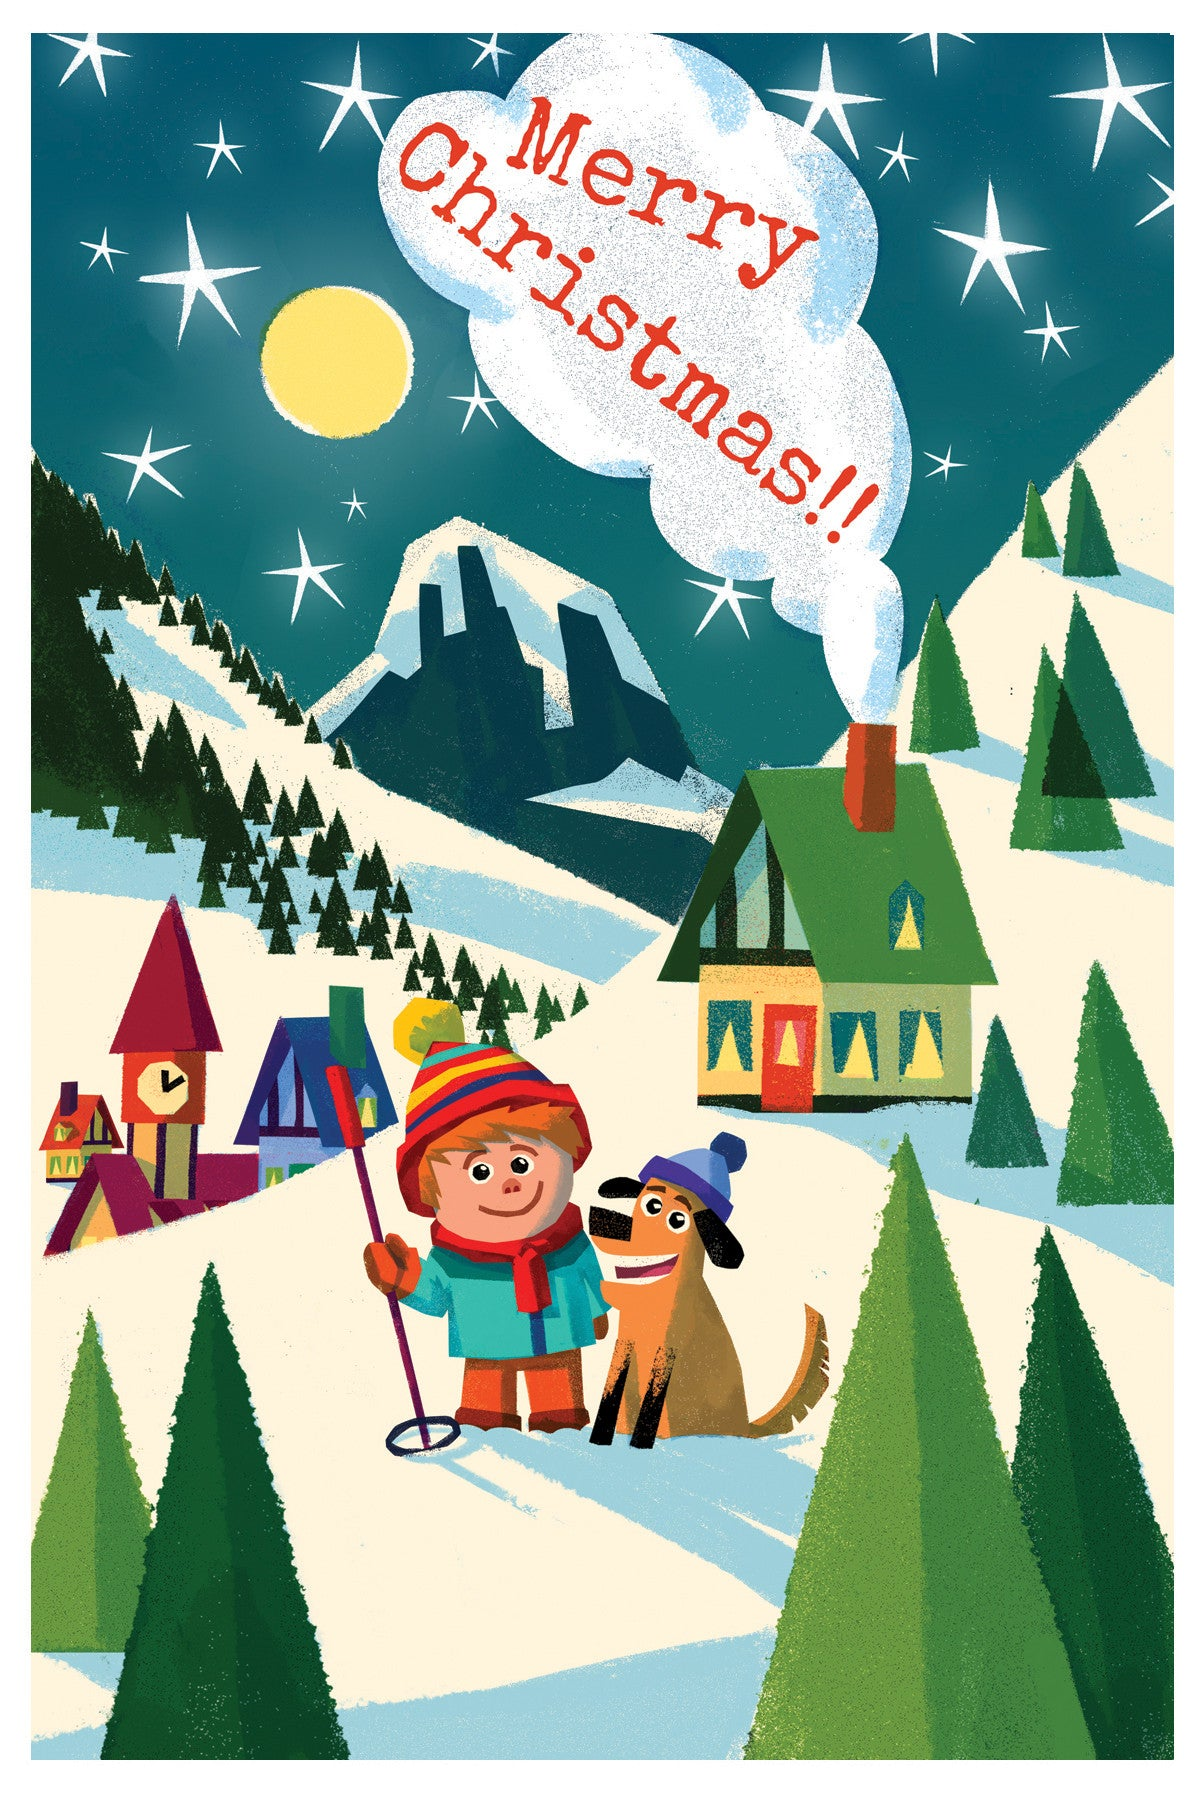 Boy and Dog Christmas Card - Scratch n' Sniff series